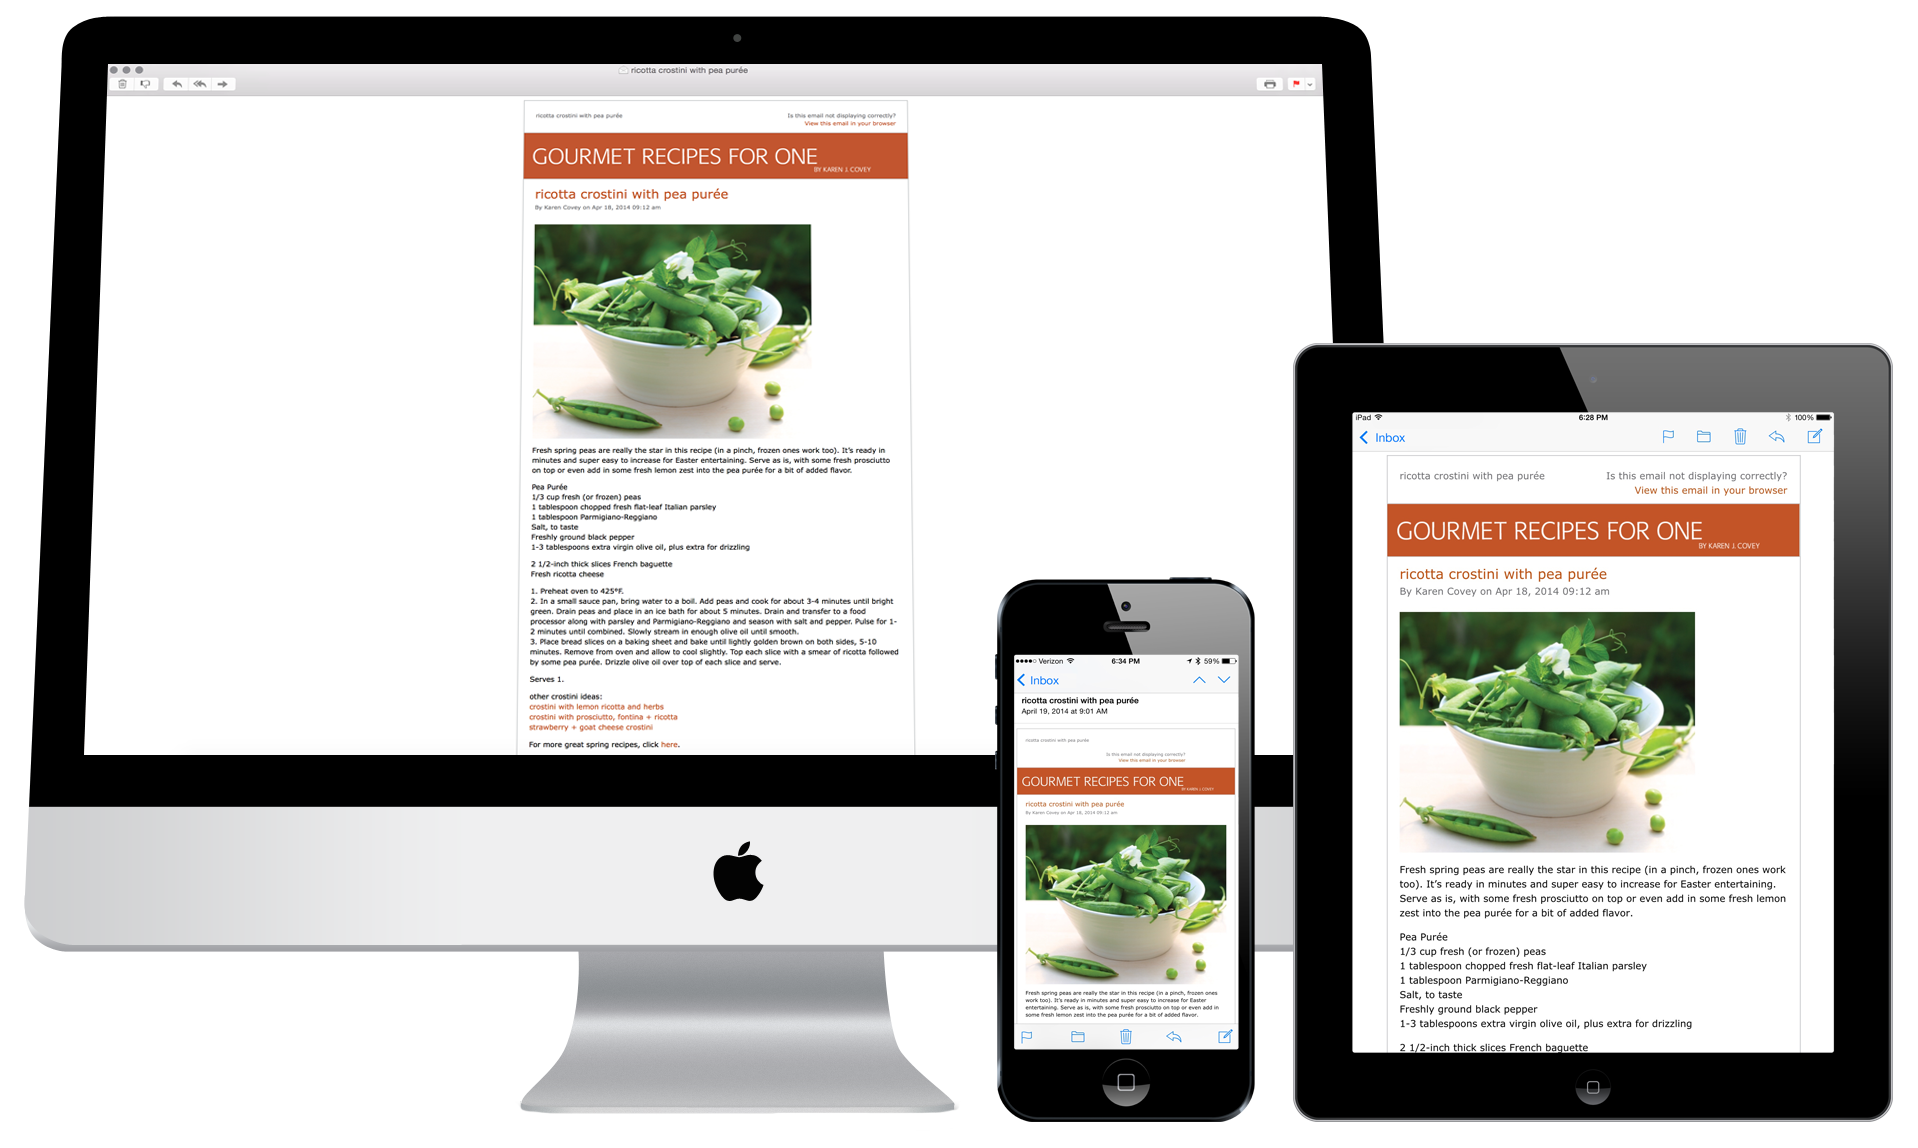 Gourmet Recipes For One - eMail Campaign